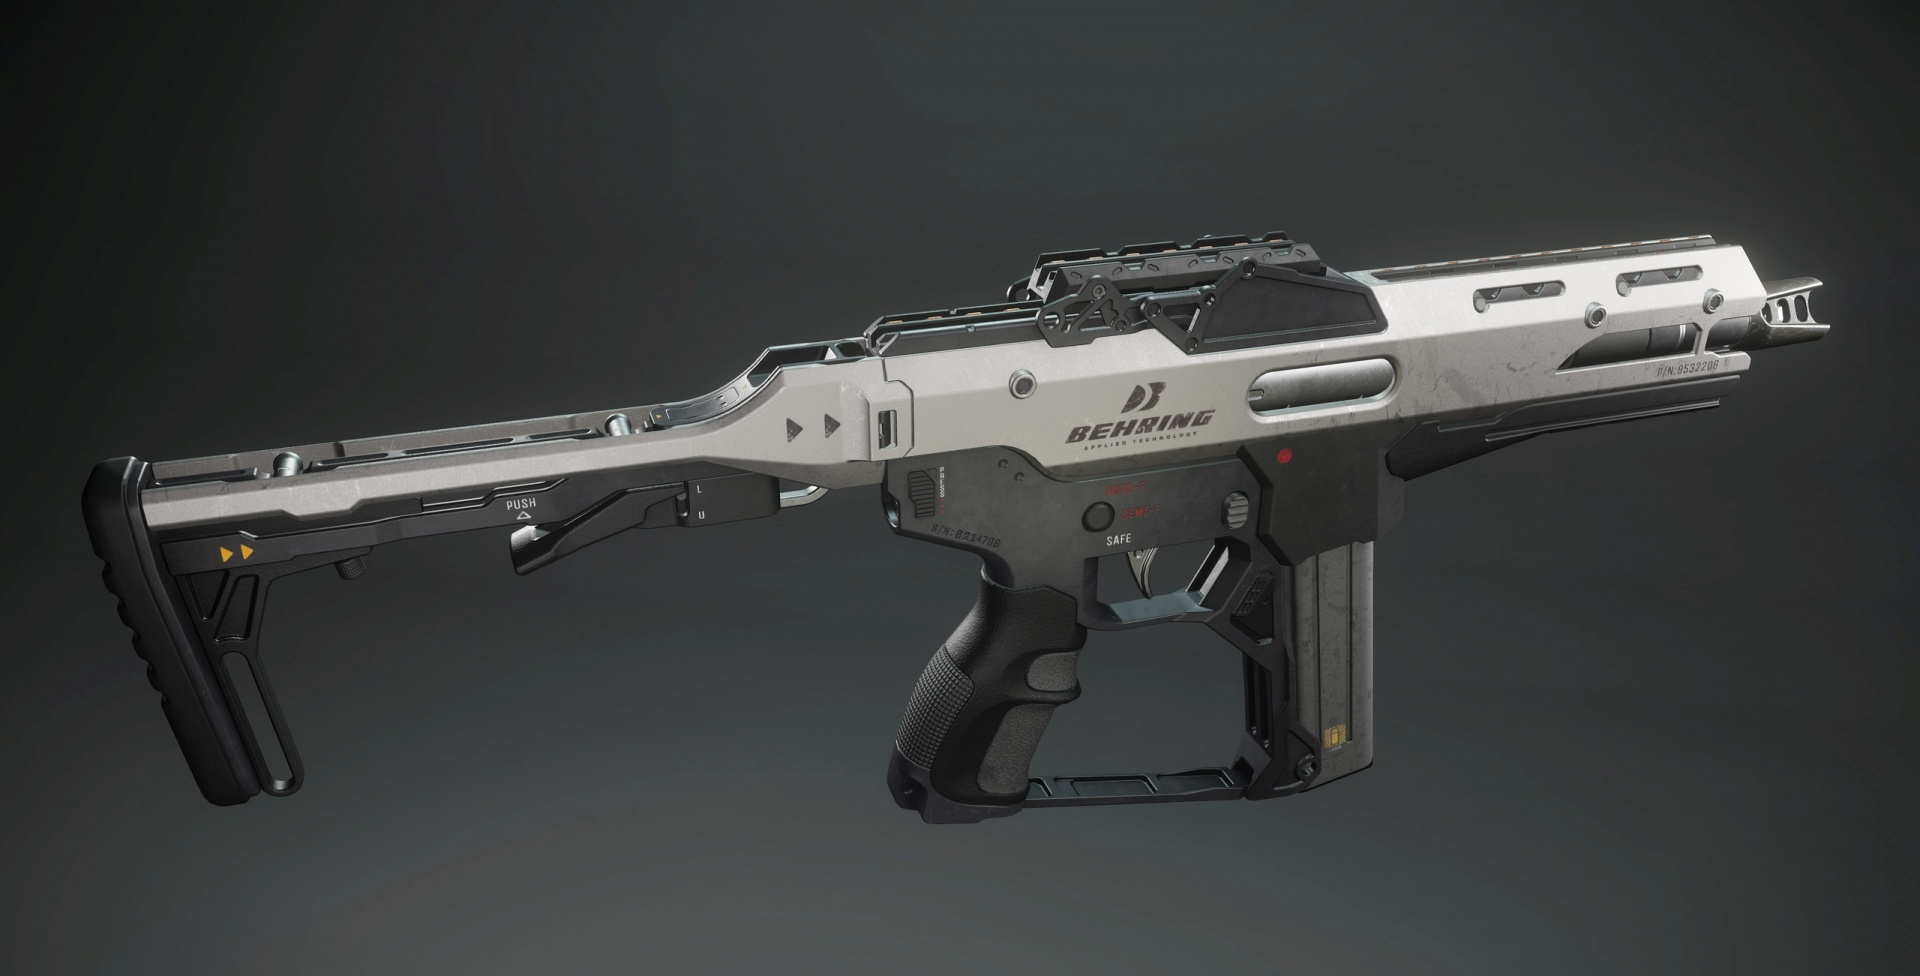 Buy Star Citizen Weapons